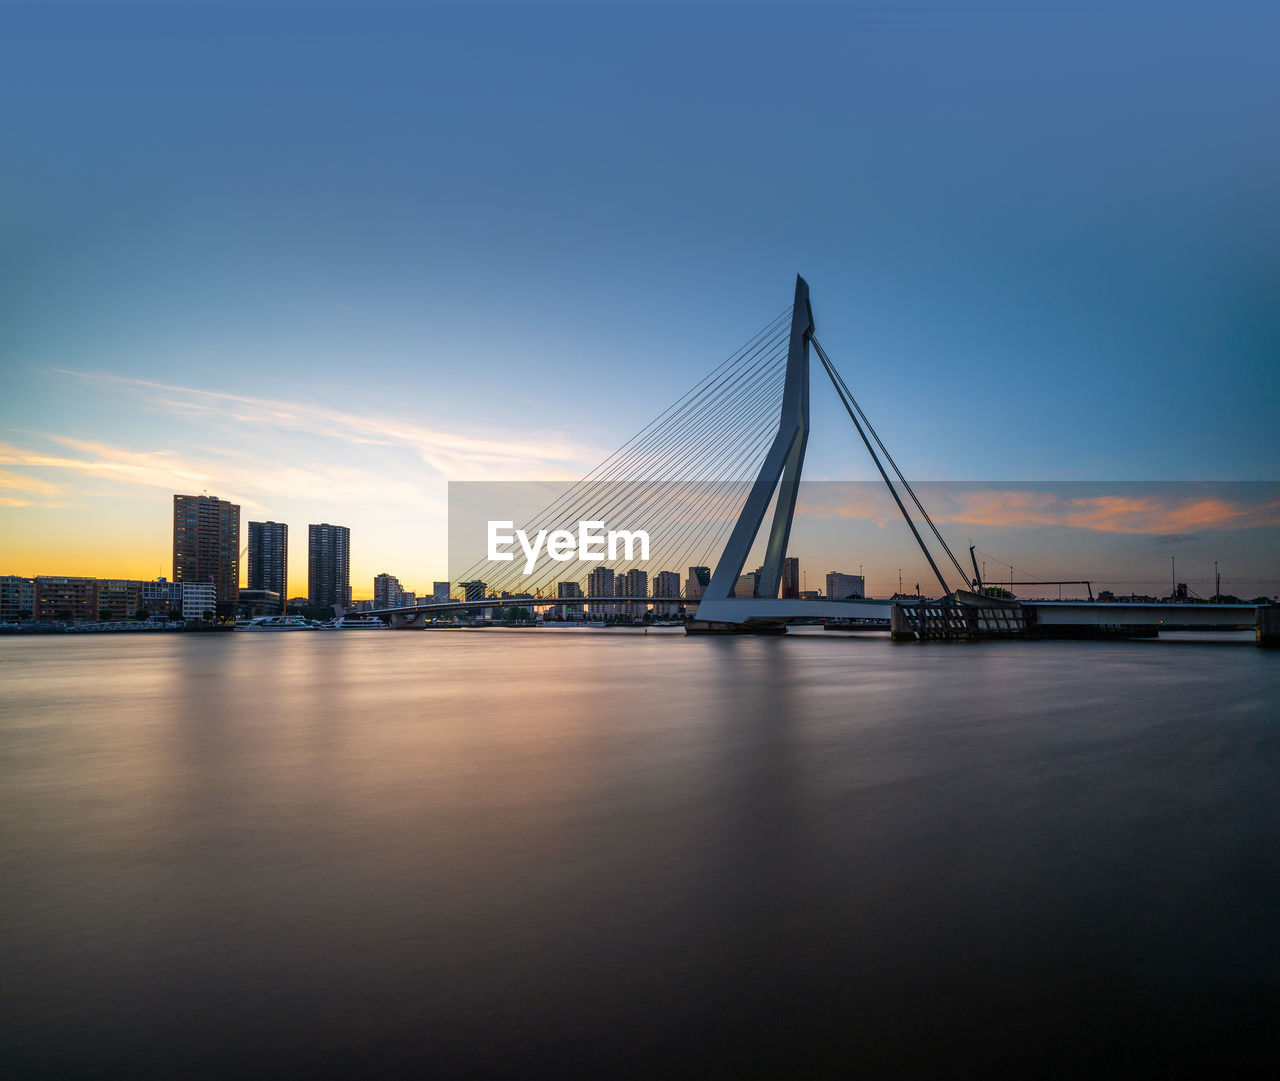 water, sky, architecture, built structure, waterfront, transportation, bridge - man made structure, bridge, connection, no people, city, river, nature, building exterior, reflection, cable-stayed bridge, sunset, outdoors, bay, skyscraper